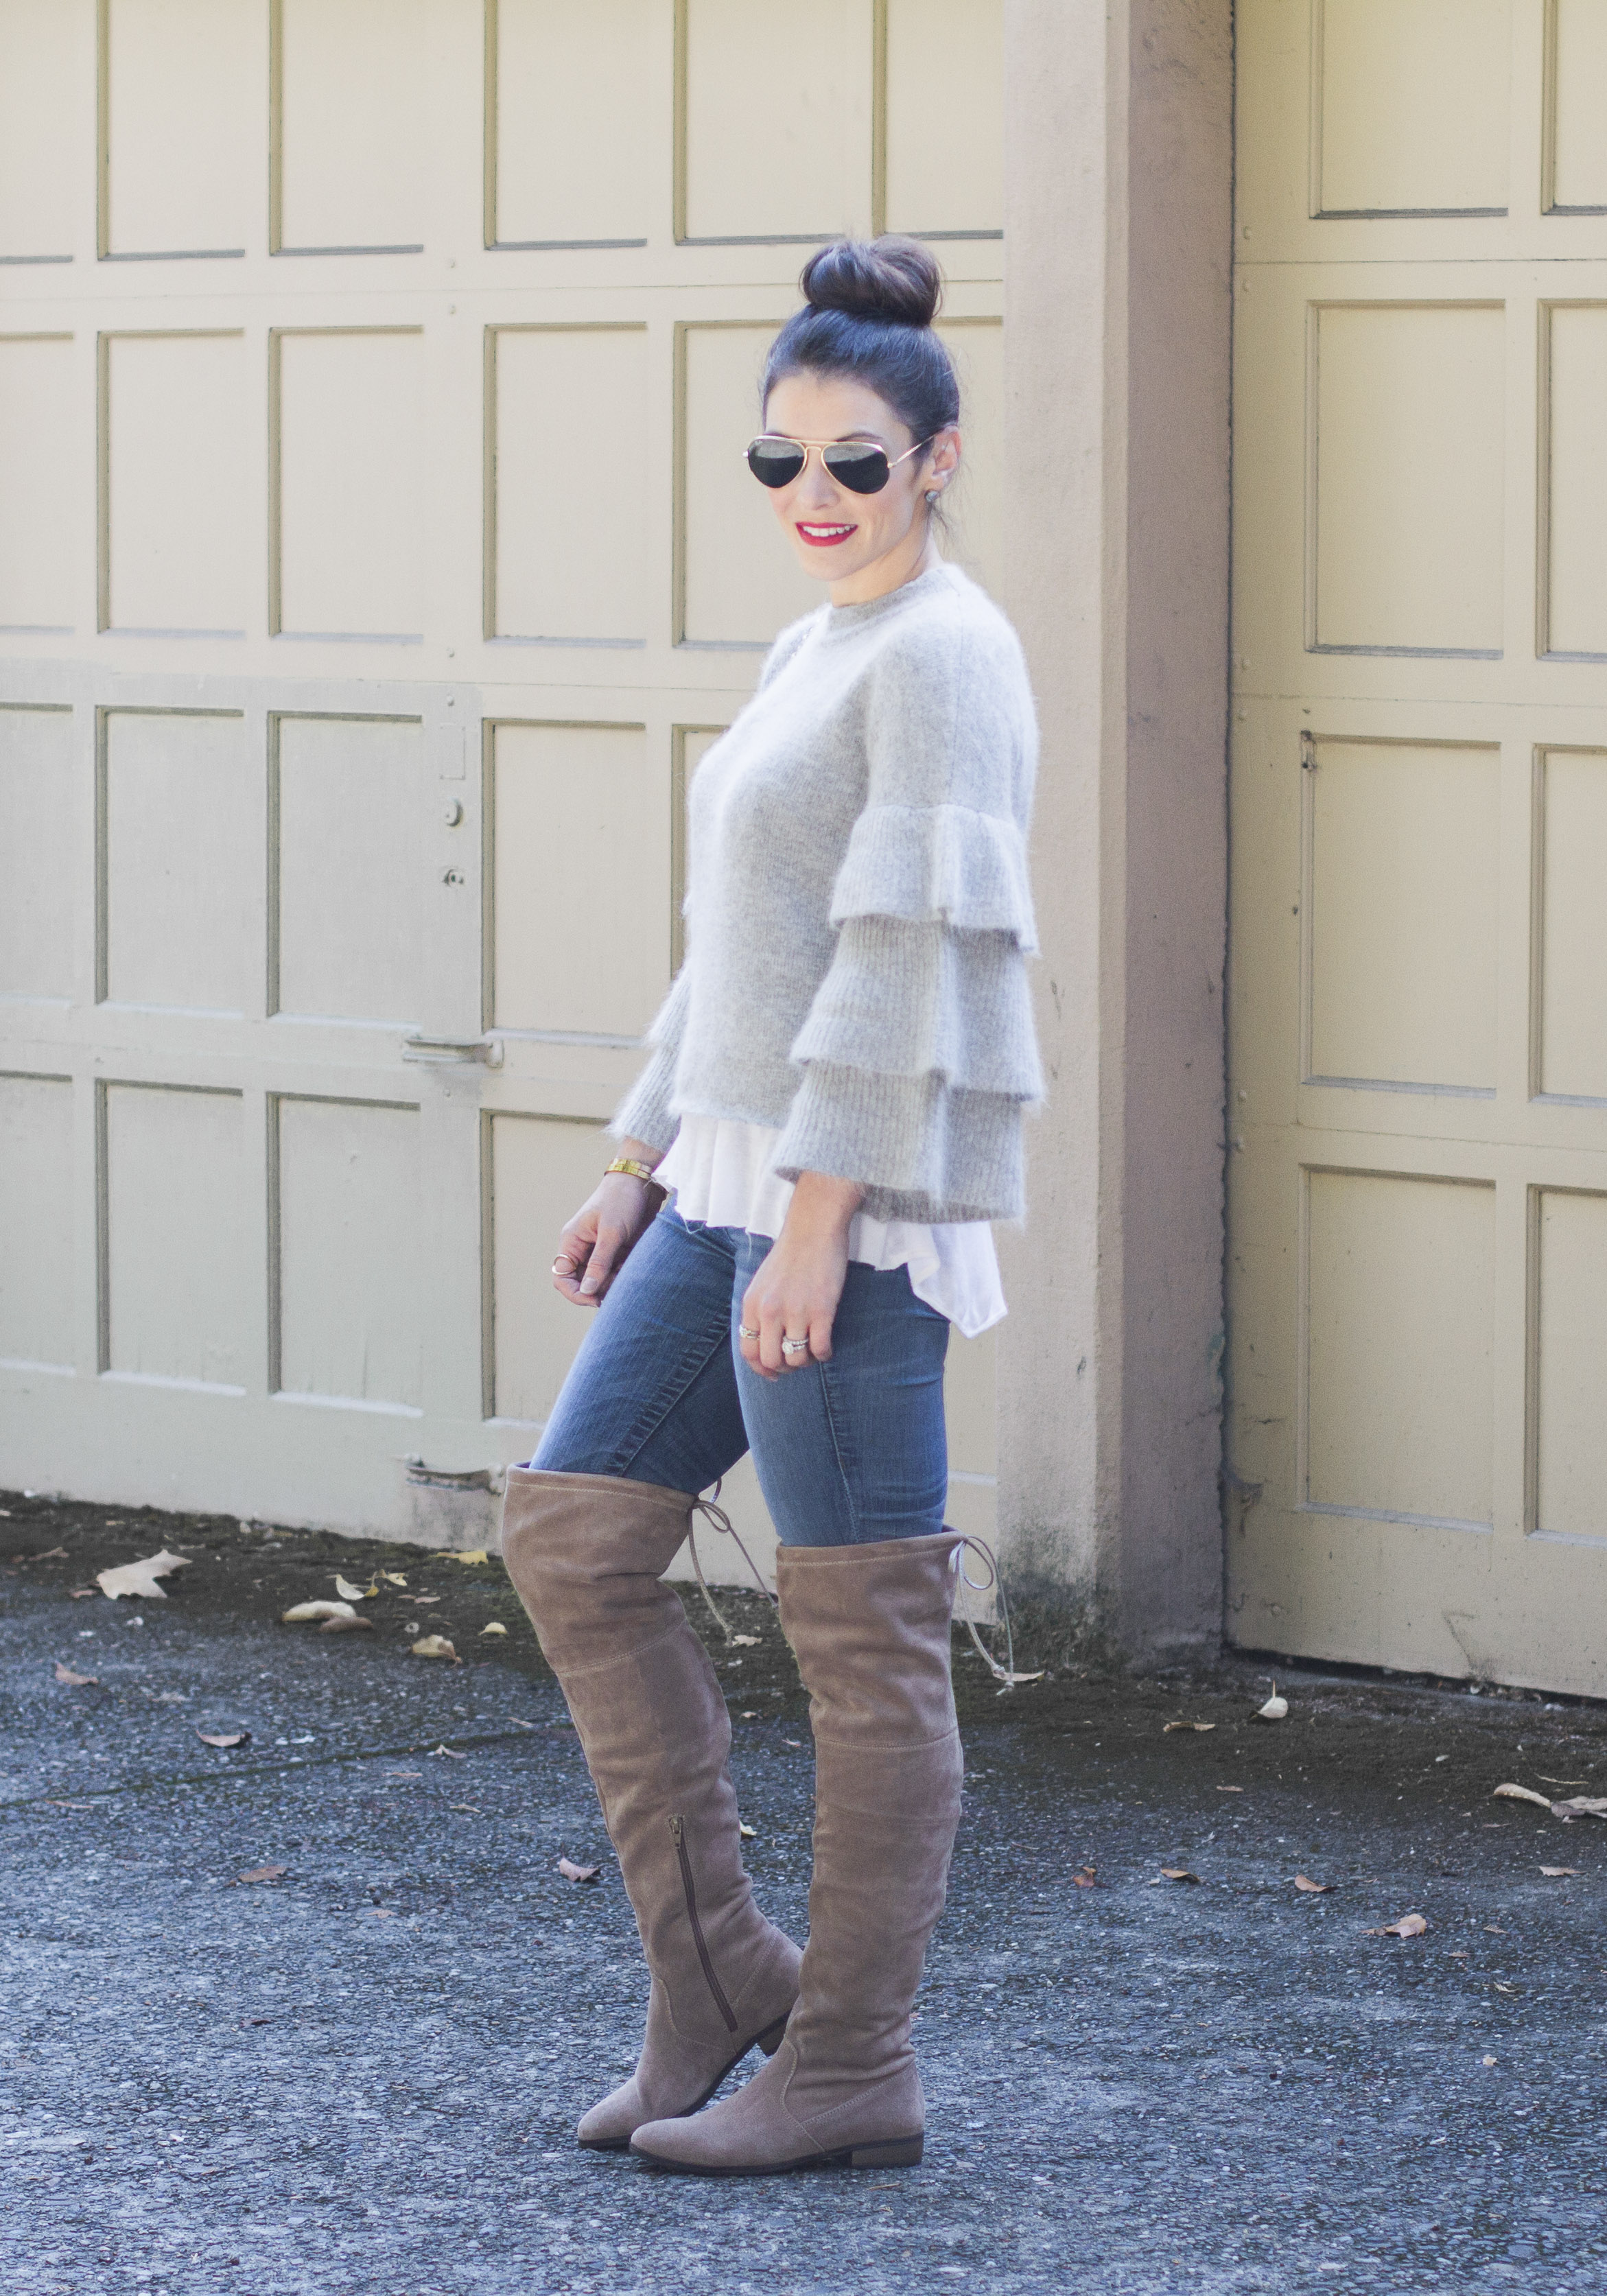 Cute over the knee boots outfits, fall outfits, Endless rose ruffle sleeve sweater, skinny jeans, taupe over the knee boots